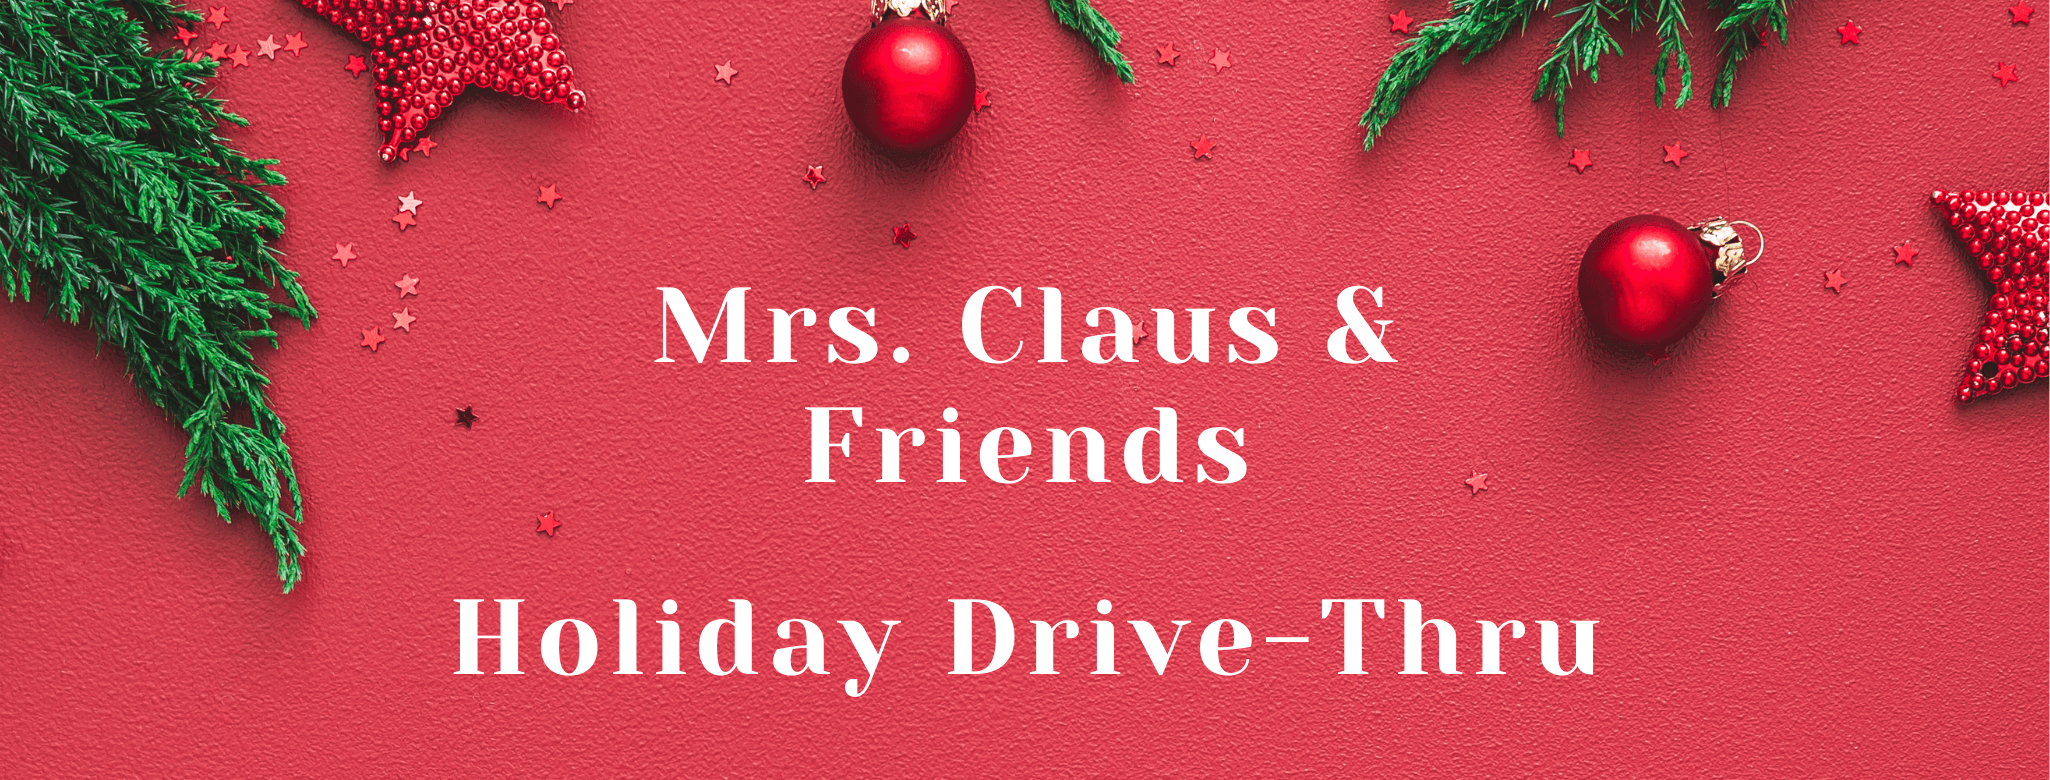 Mrs. Claus & Friends Holiday Drive-thru event